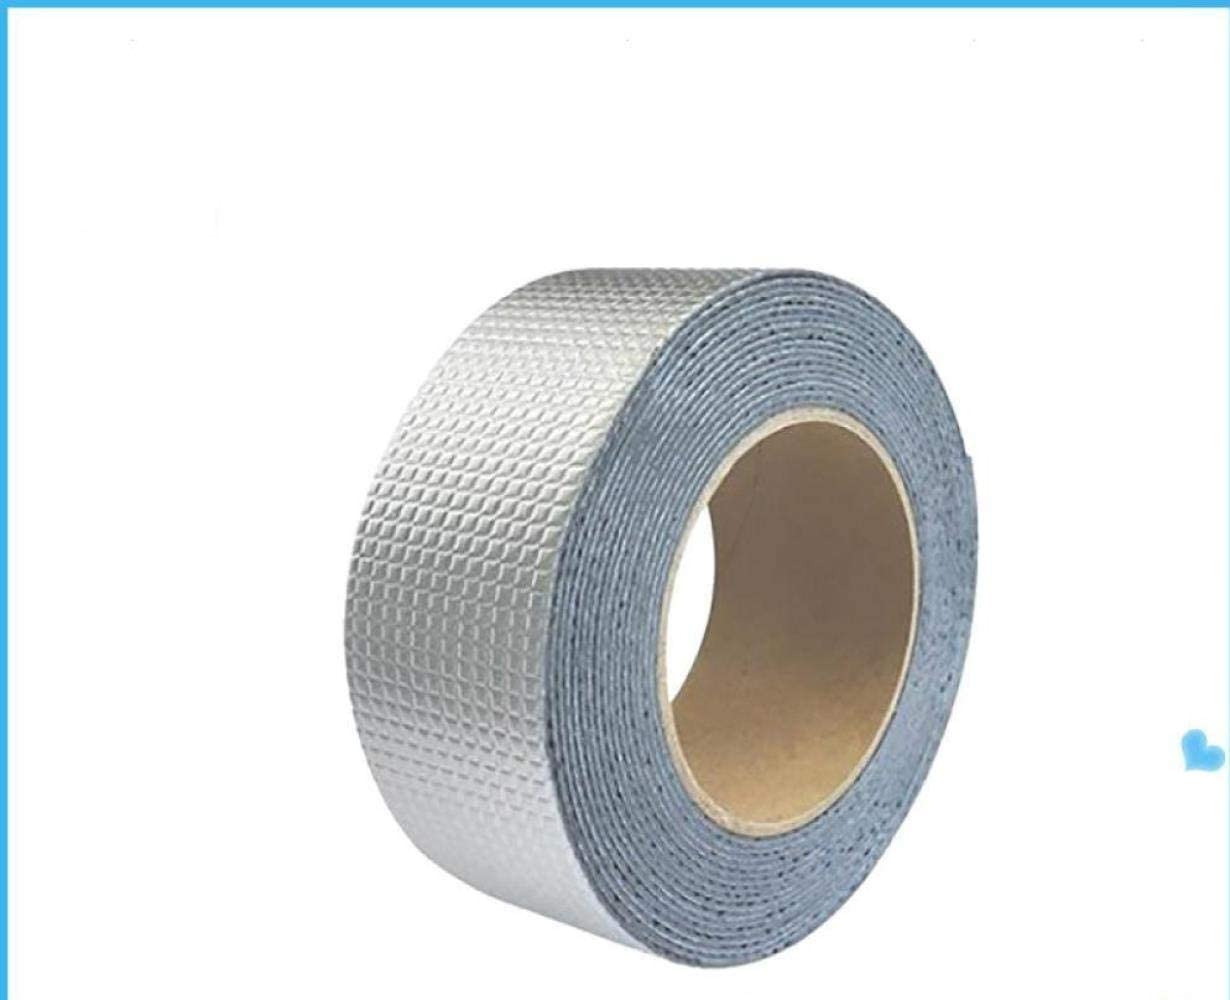 Flex Flexible Butyl All Weather Patch and Shield Repair Tape,for Roof,RV Repair, Window, Boat Sealing, Glass and EDPM Rubber Roof Patching